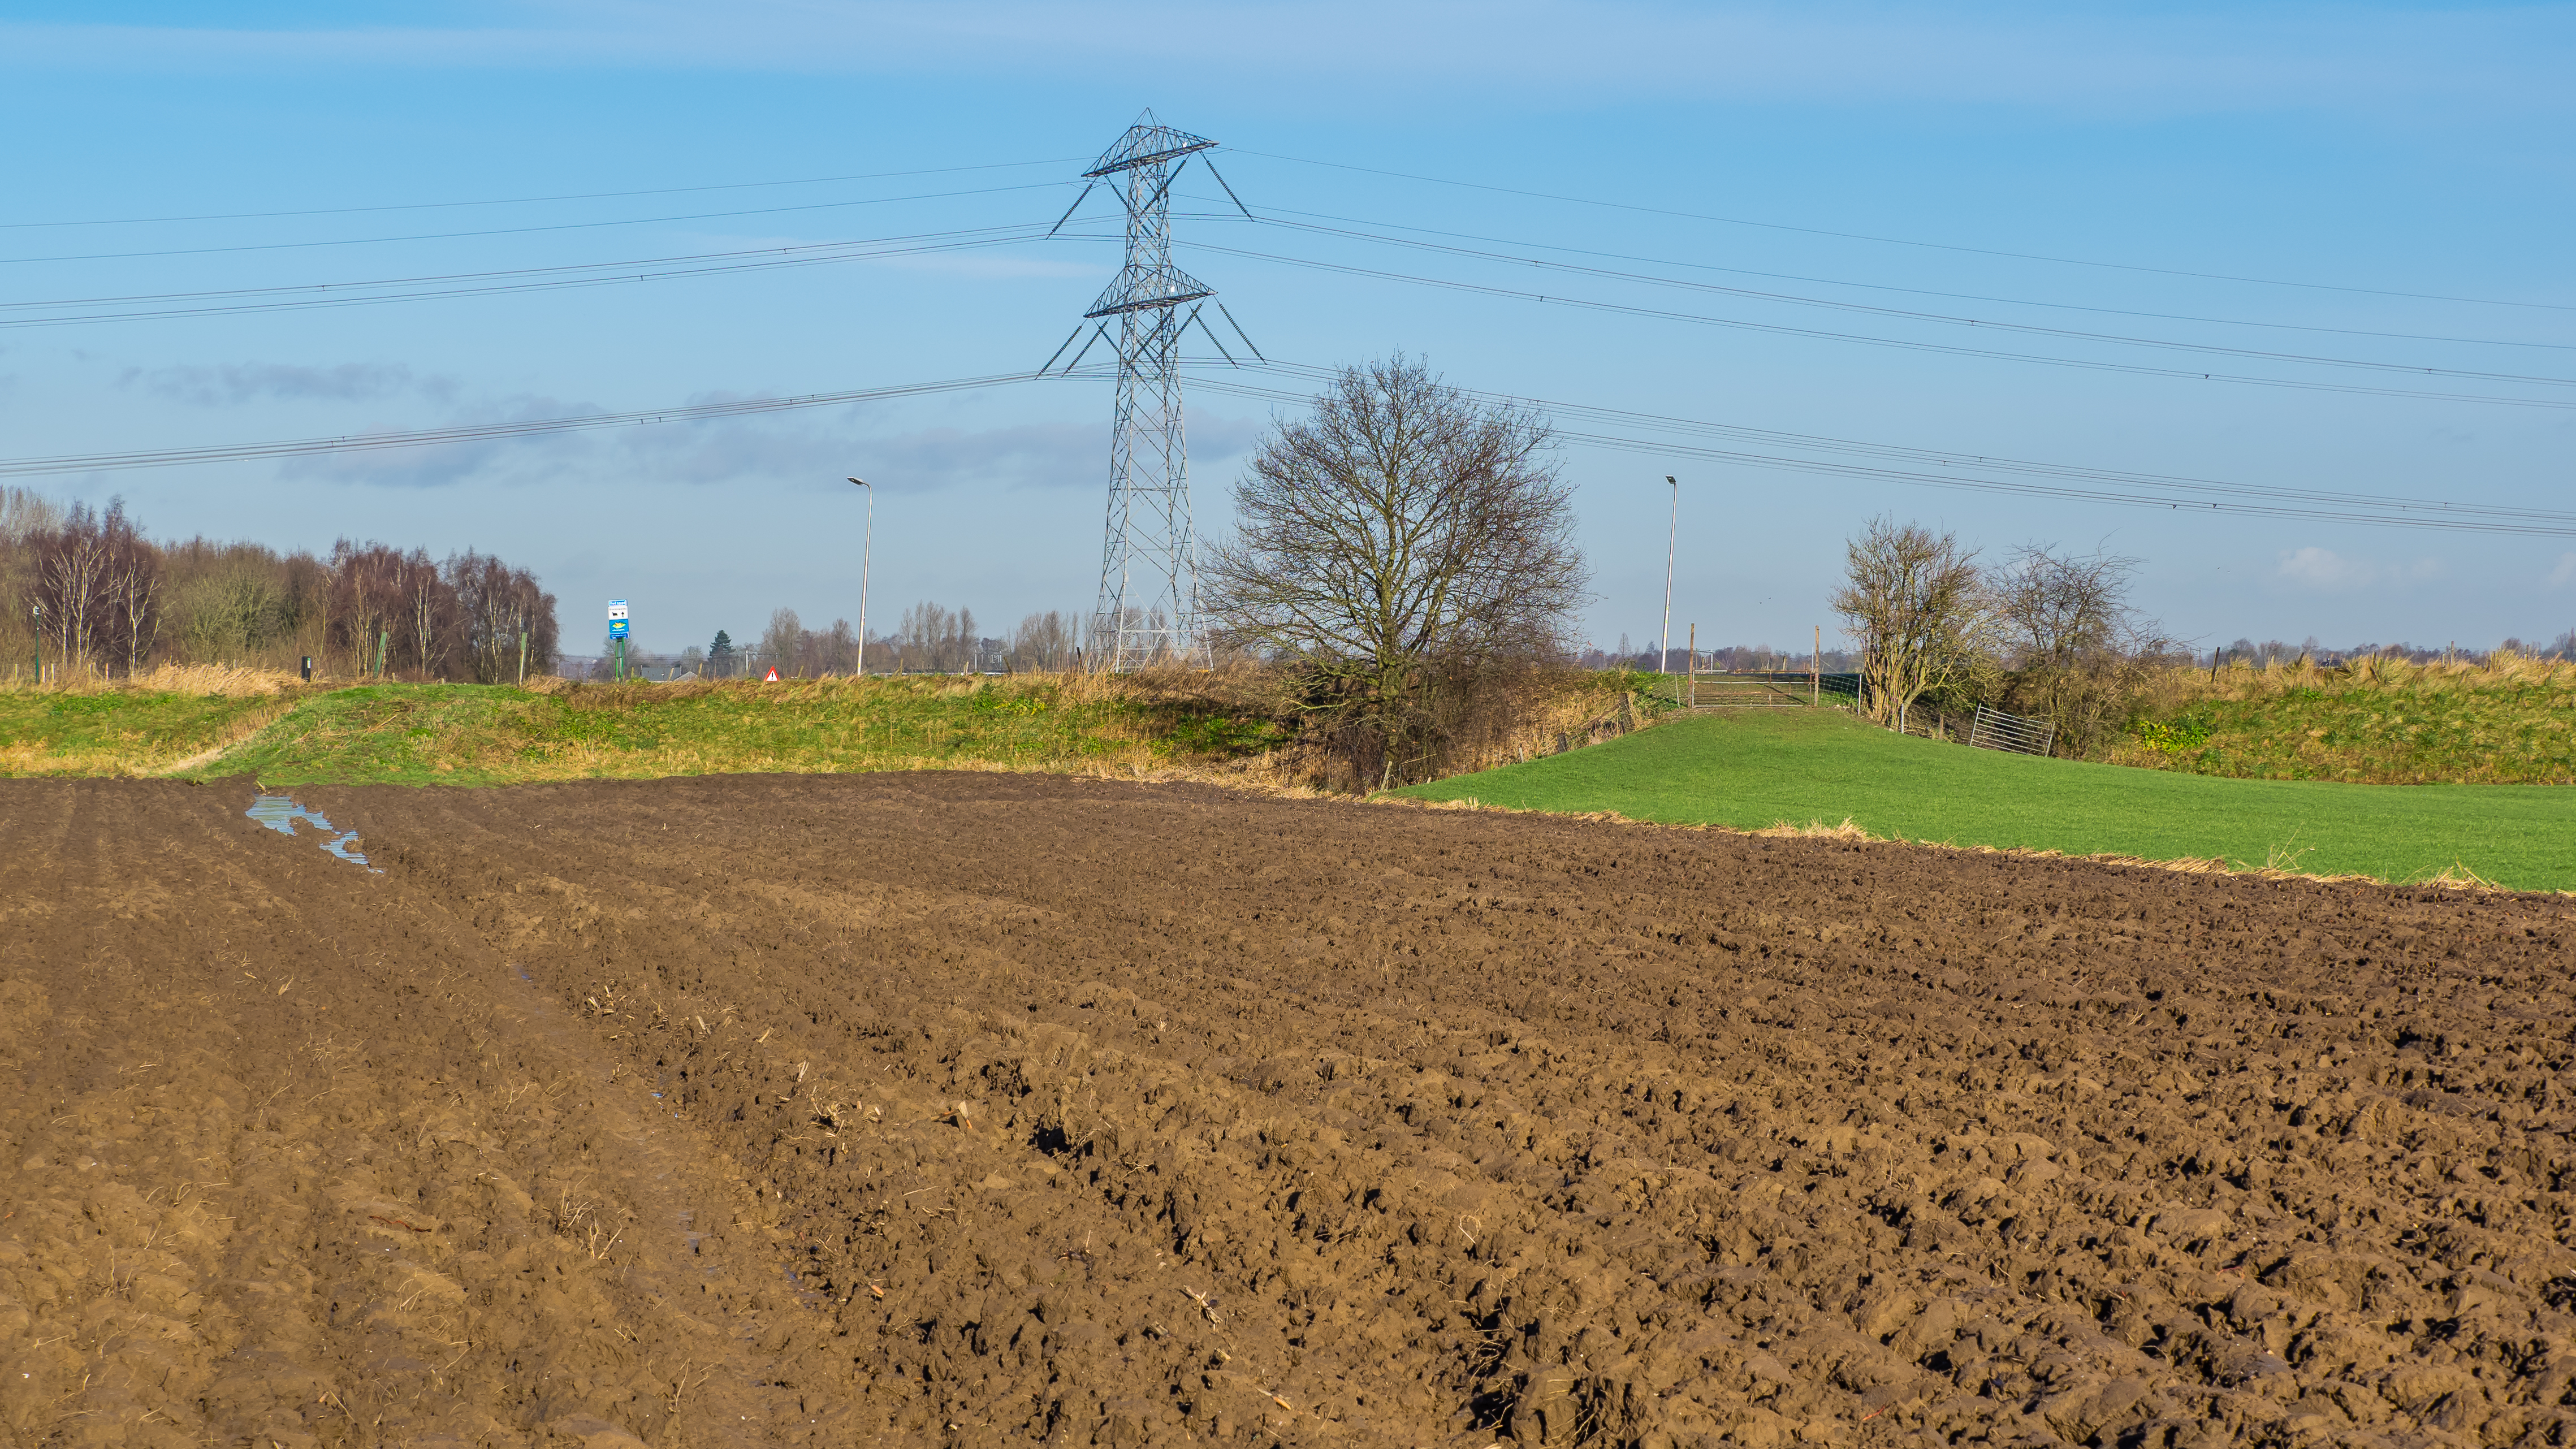 Filegeploegde Akker Plowed Field Steinsedijk Haastrecht